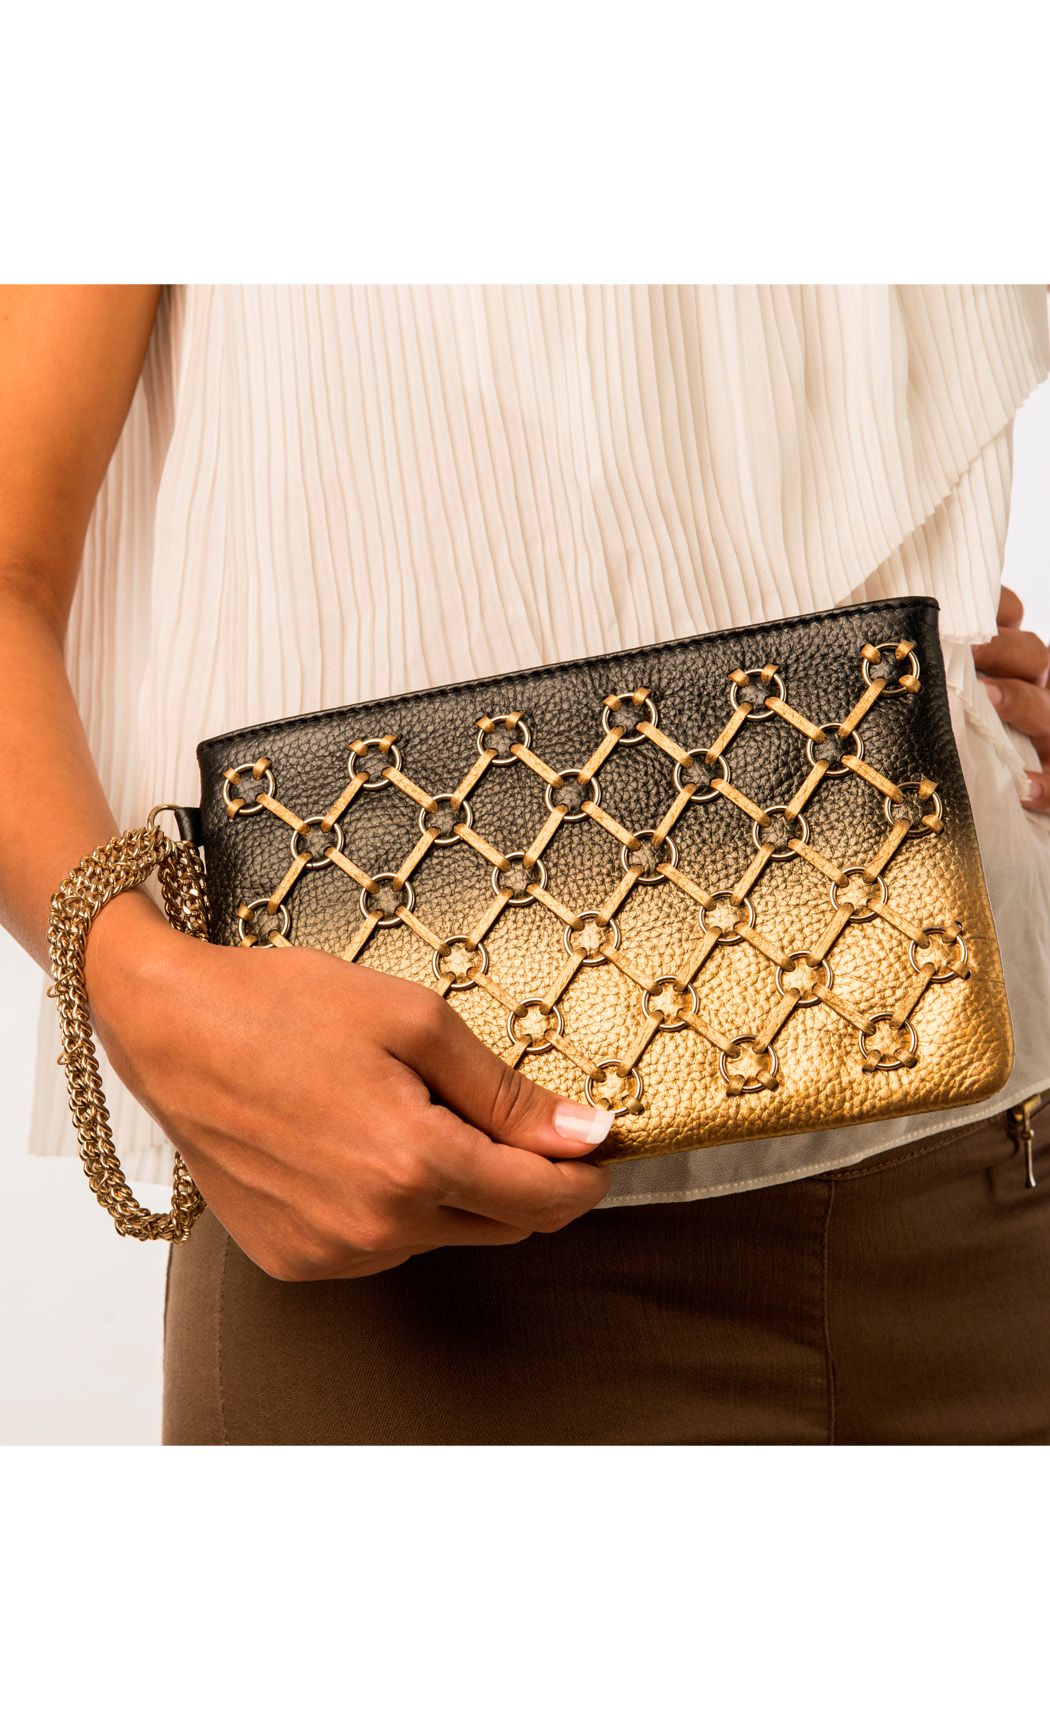 Symphony and Symmetry Ring Wristlet in Gold-Black. Buy Online